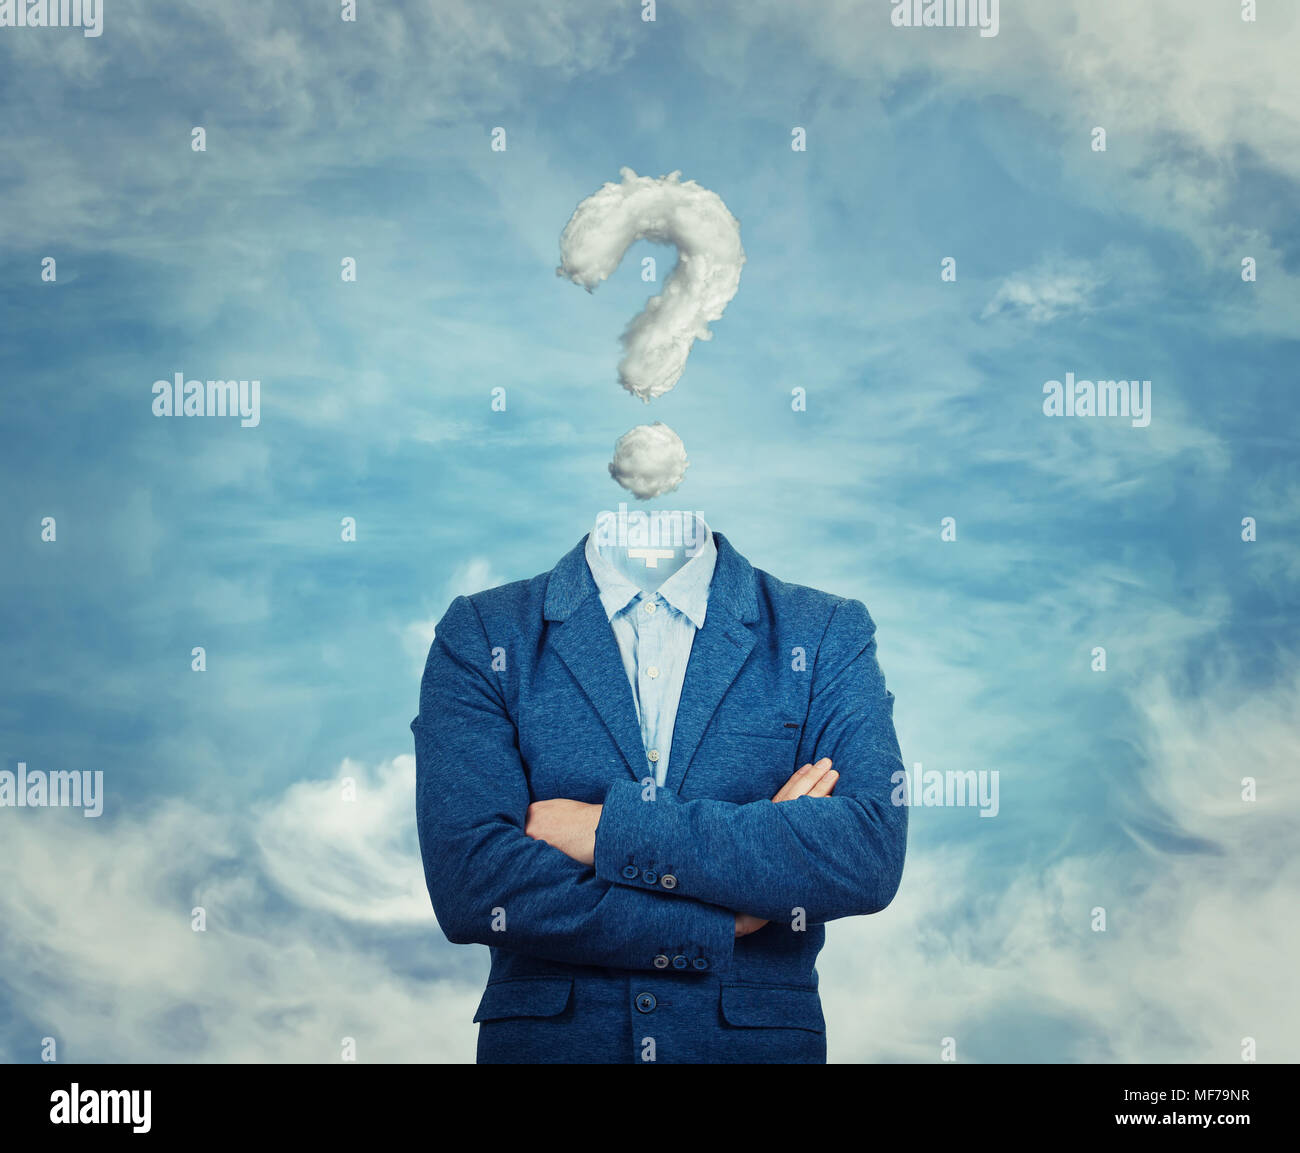 Surreal image as a businessman with invisible face stand with crossed hands and question mark insted of his head, like a mask, for hiding his identity - Stock Image